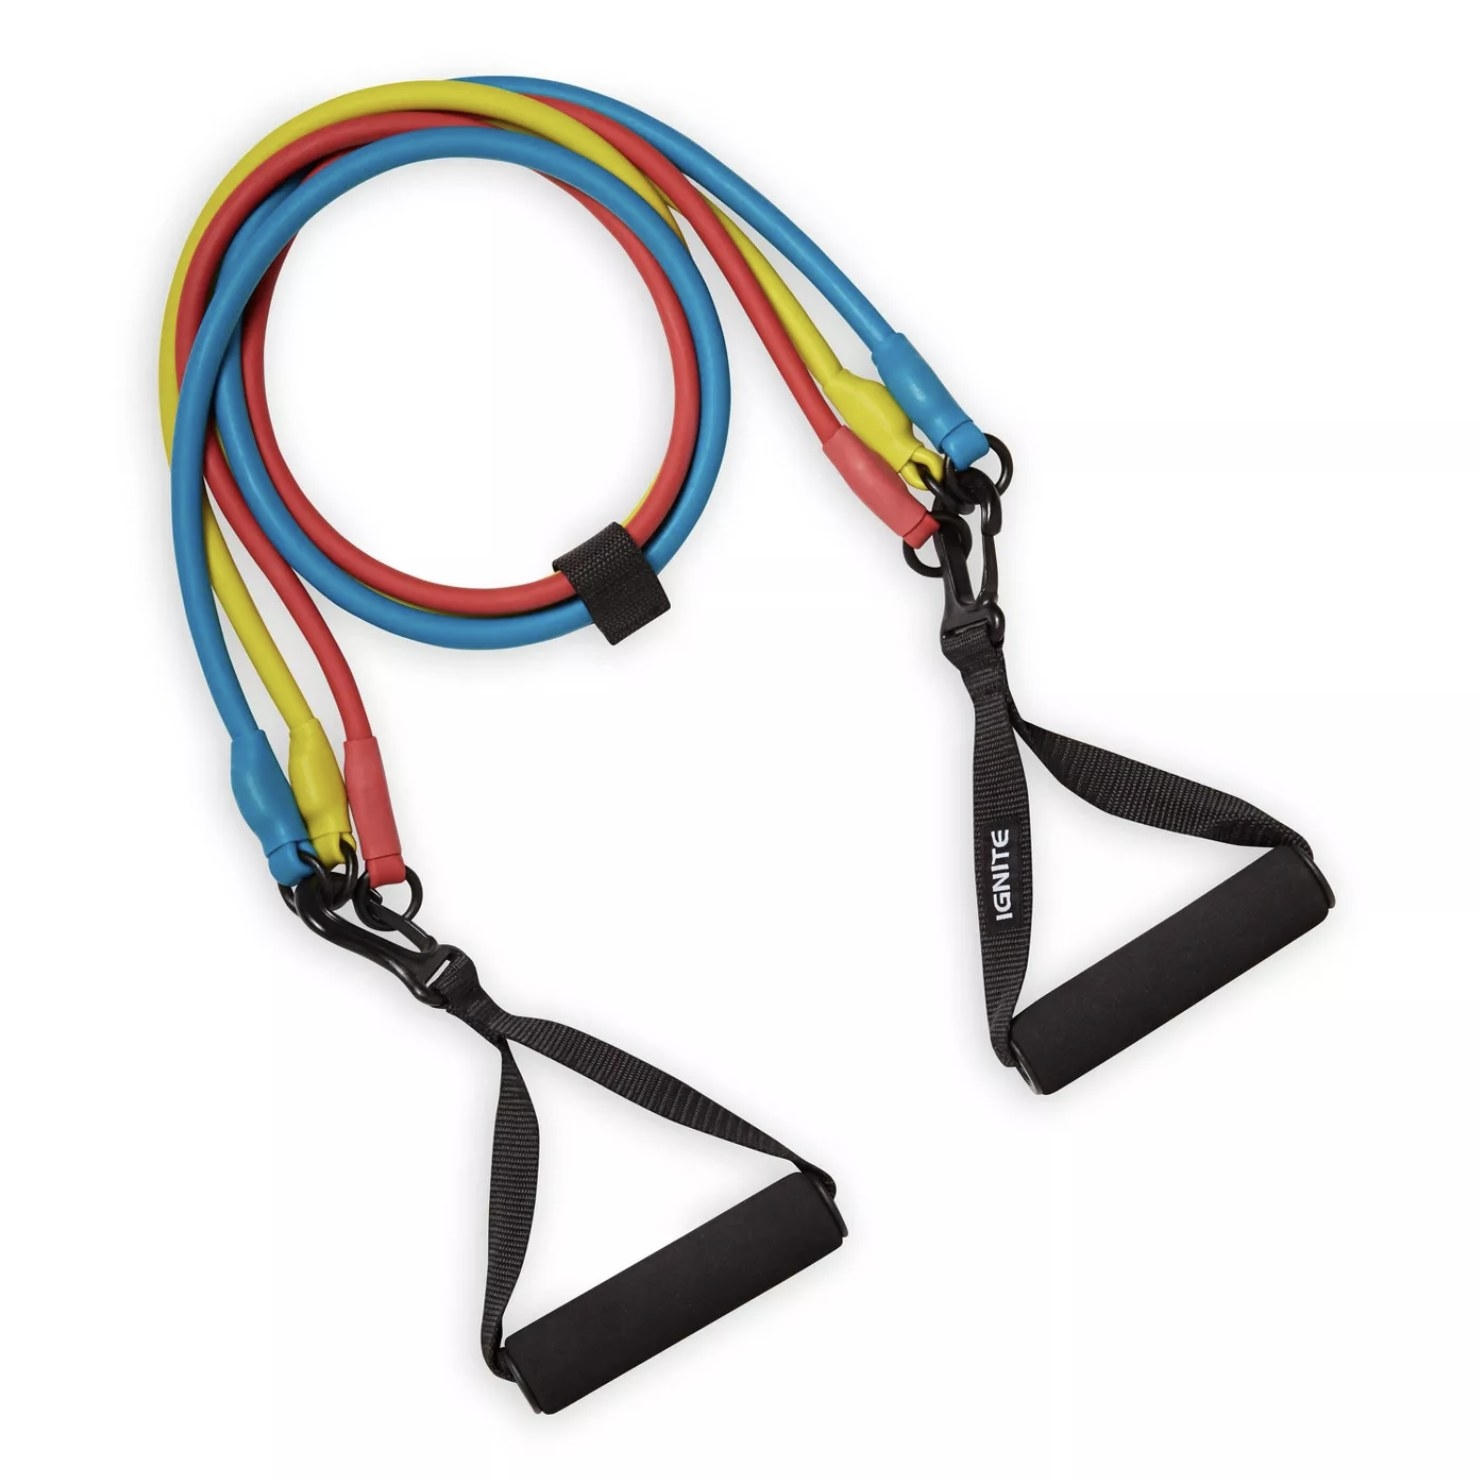 Three resistance bands